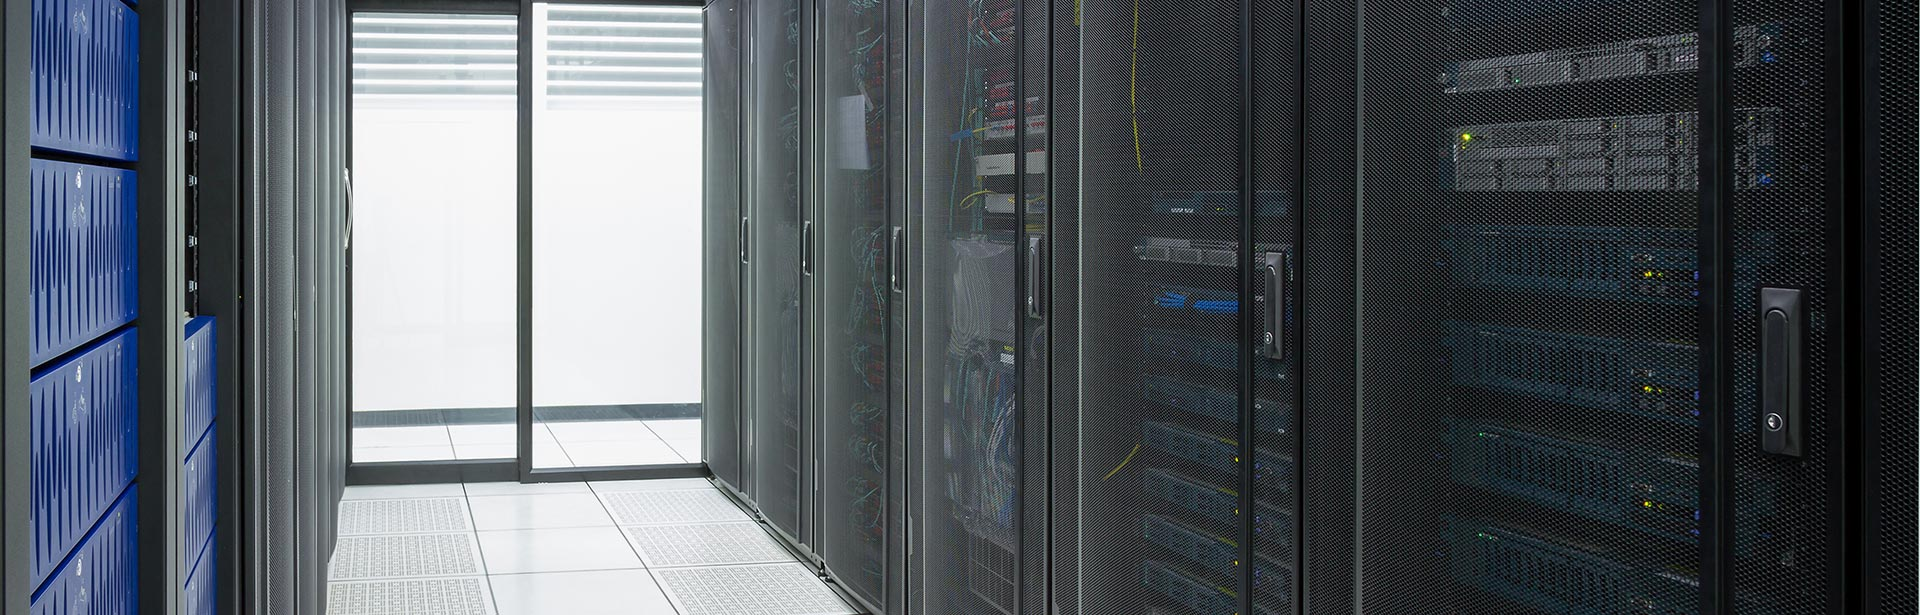 AckmanBaer_Carousel_Data-Centers_1920X615